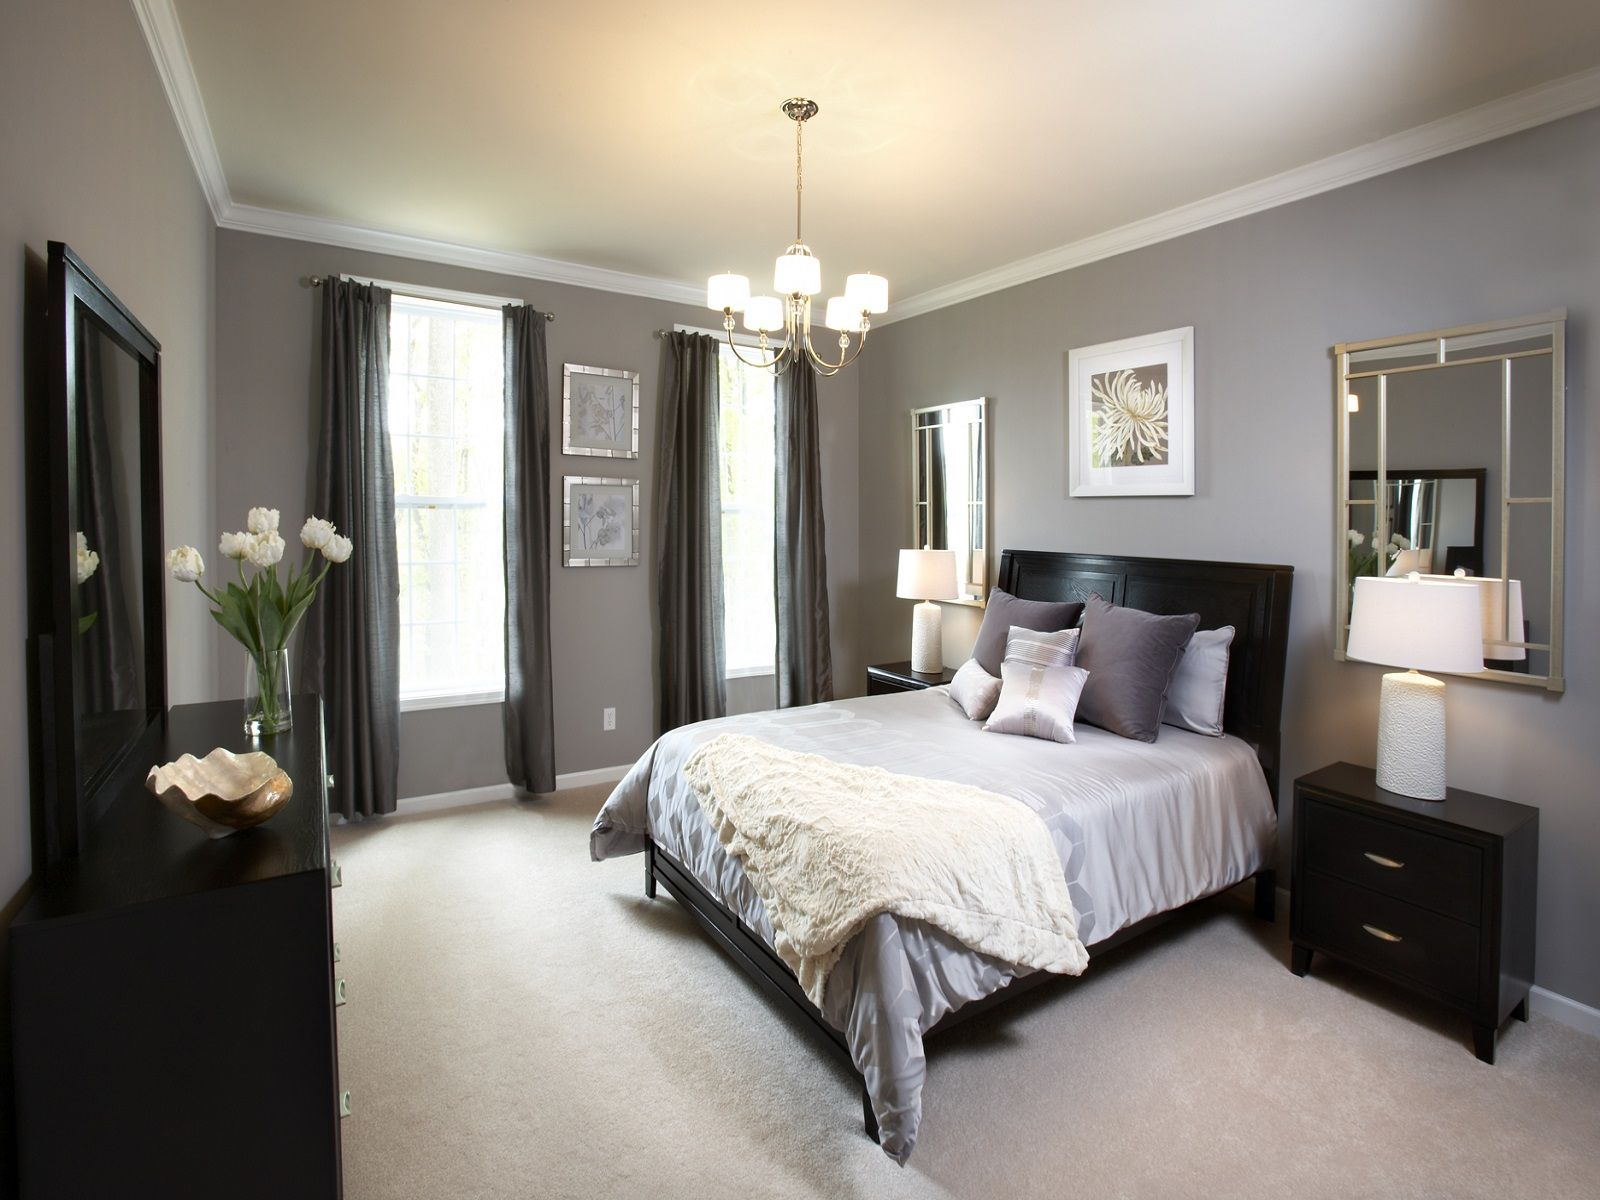 Bedroom color palette - Bedroom Paint Color Ideas For Master Bedroom Buffet With Mirror Pendant Light